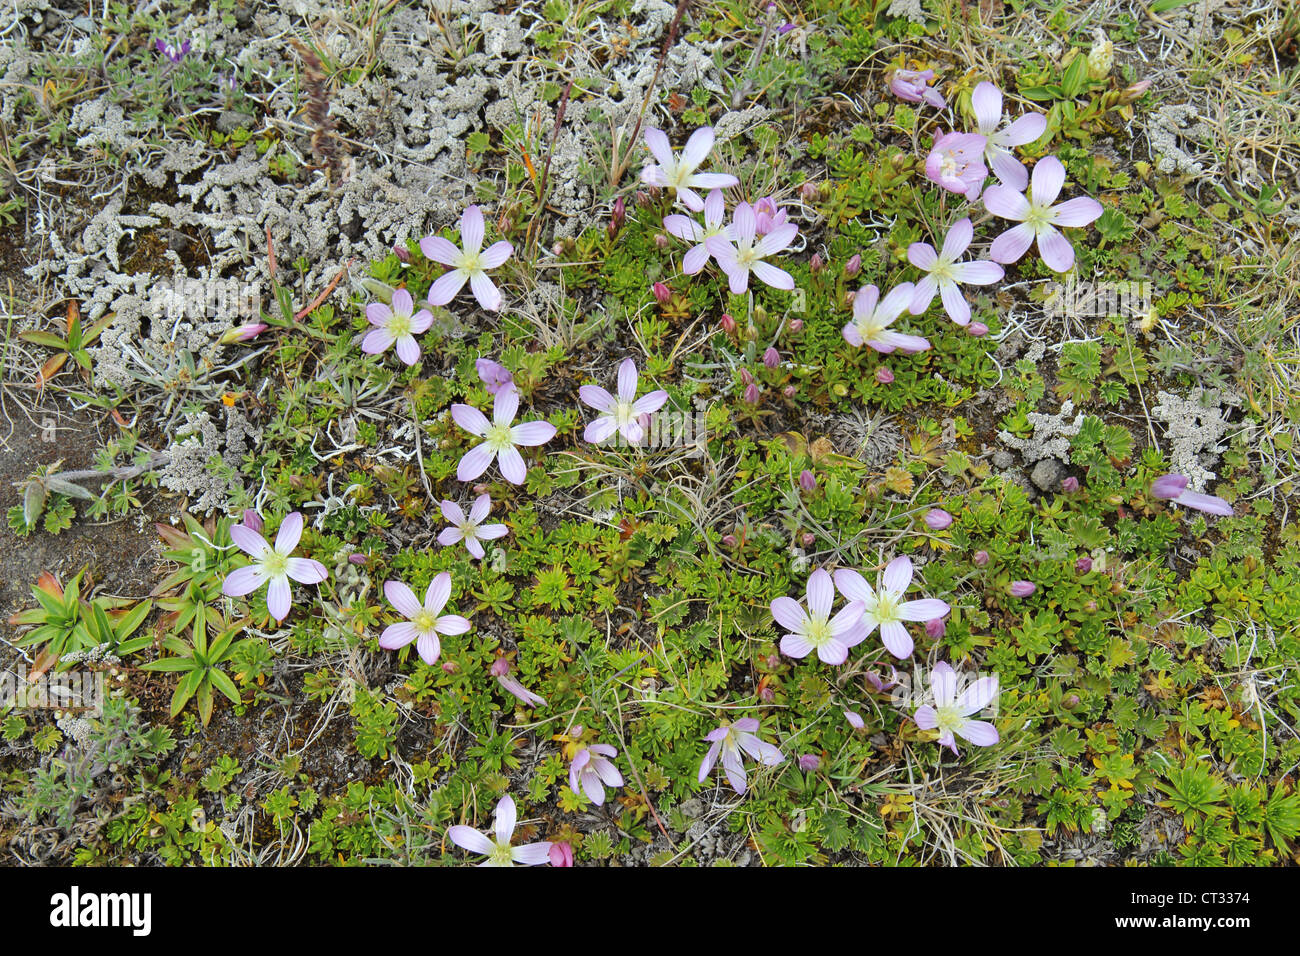 Dwarf gentians on the slopes of the Cotopaxi volcano in the highlands of Ecuador - Stock Image